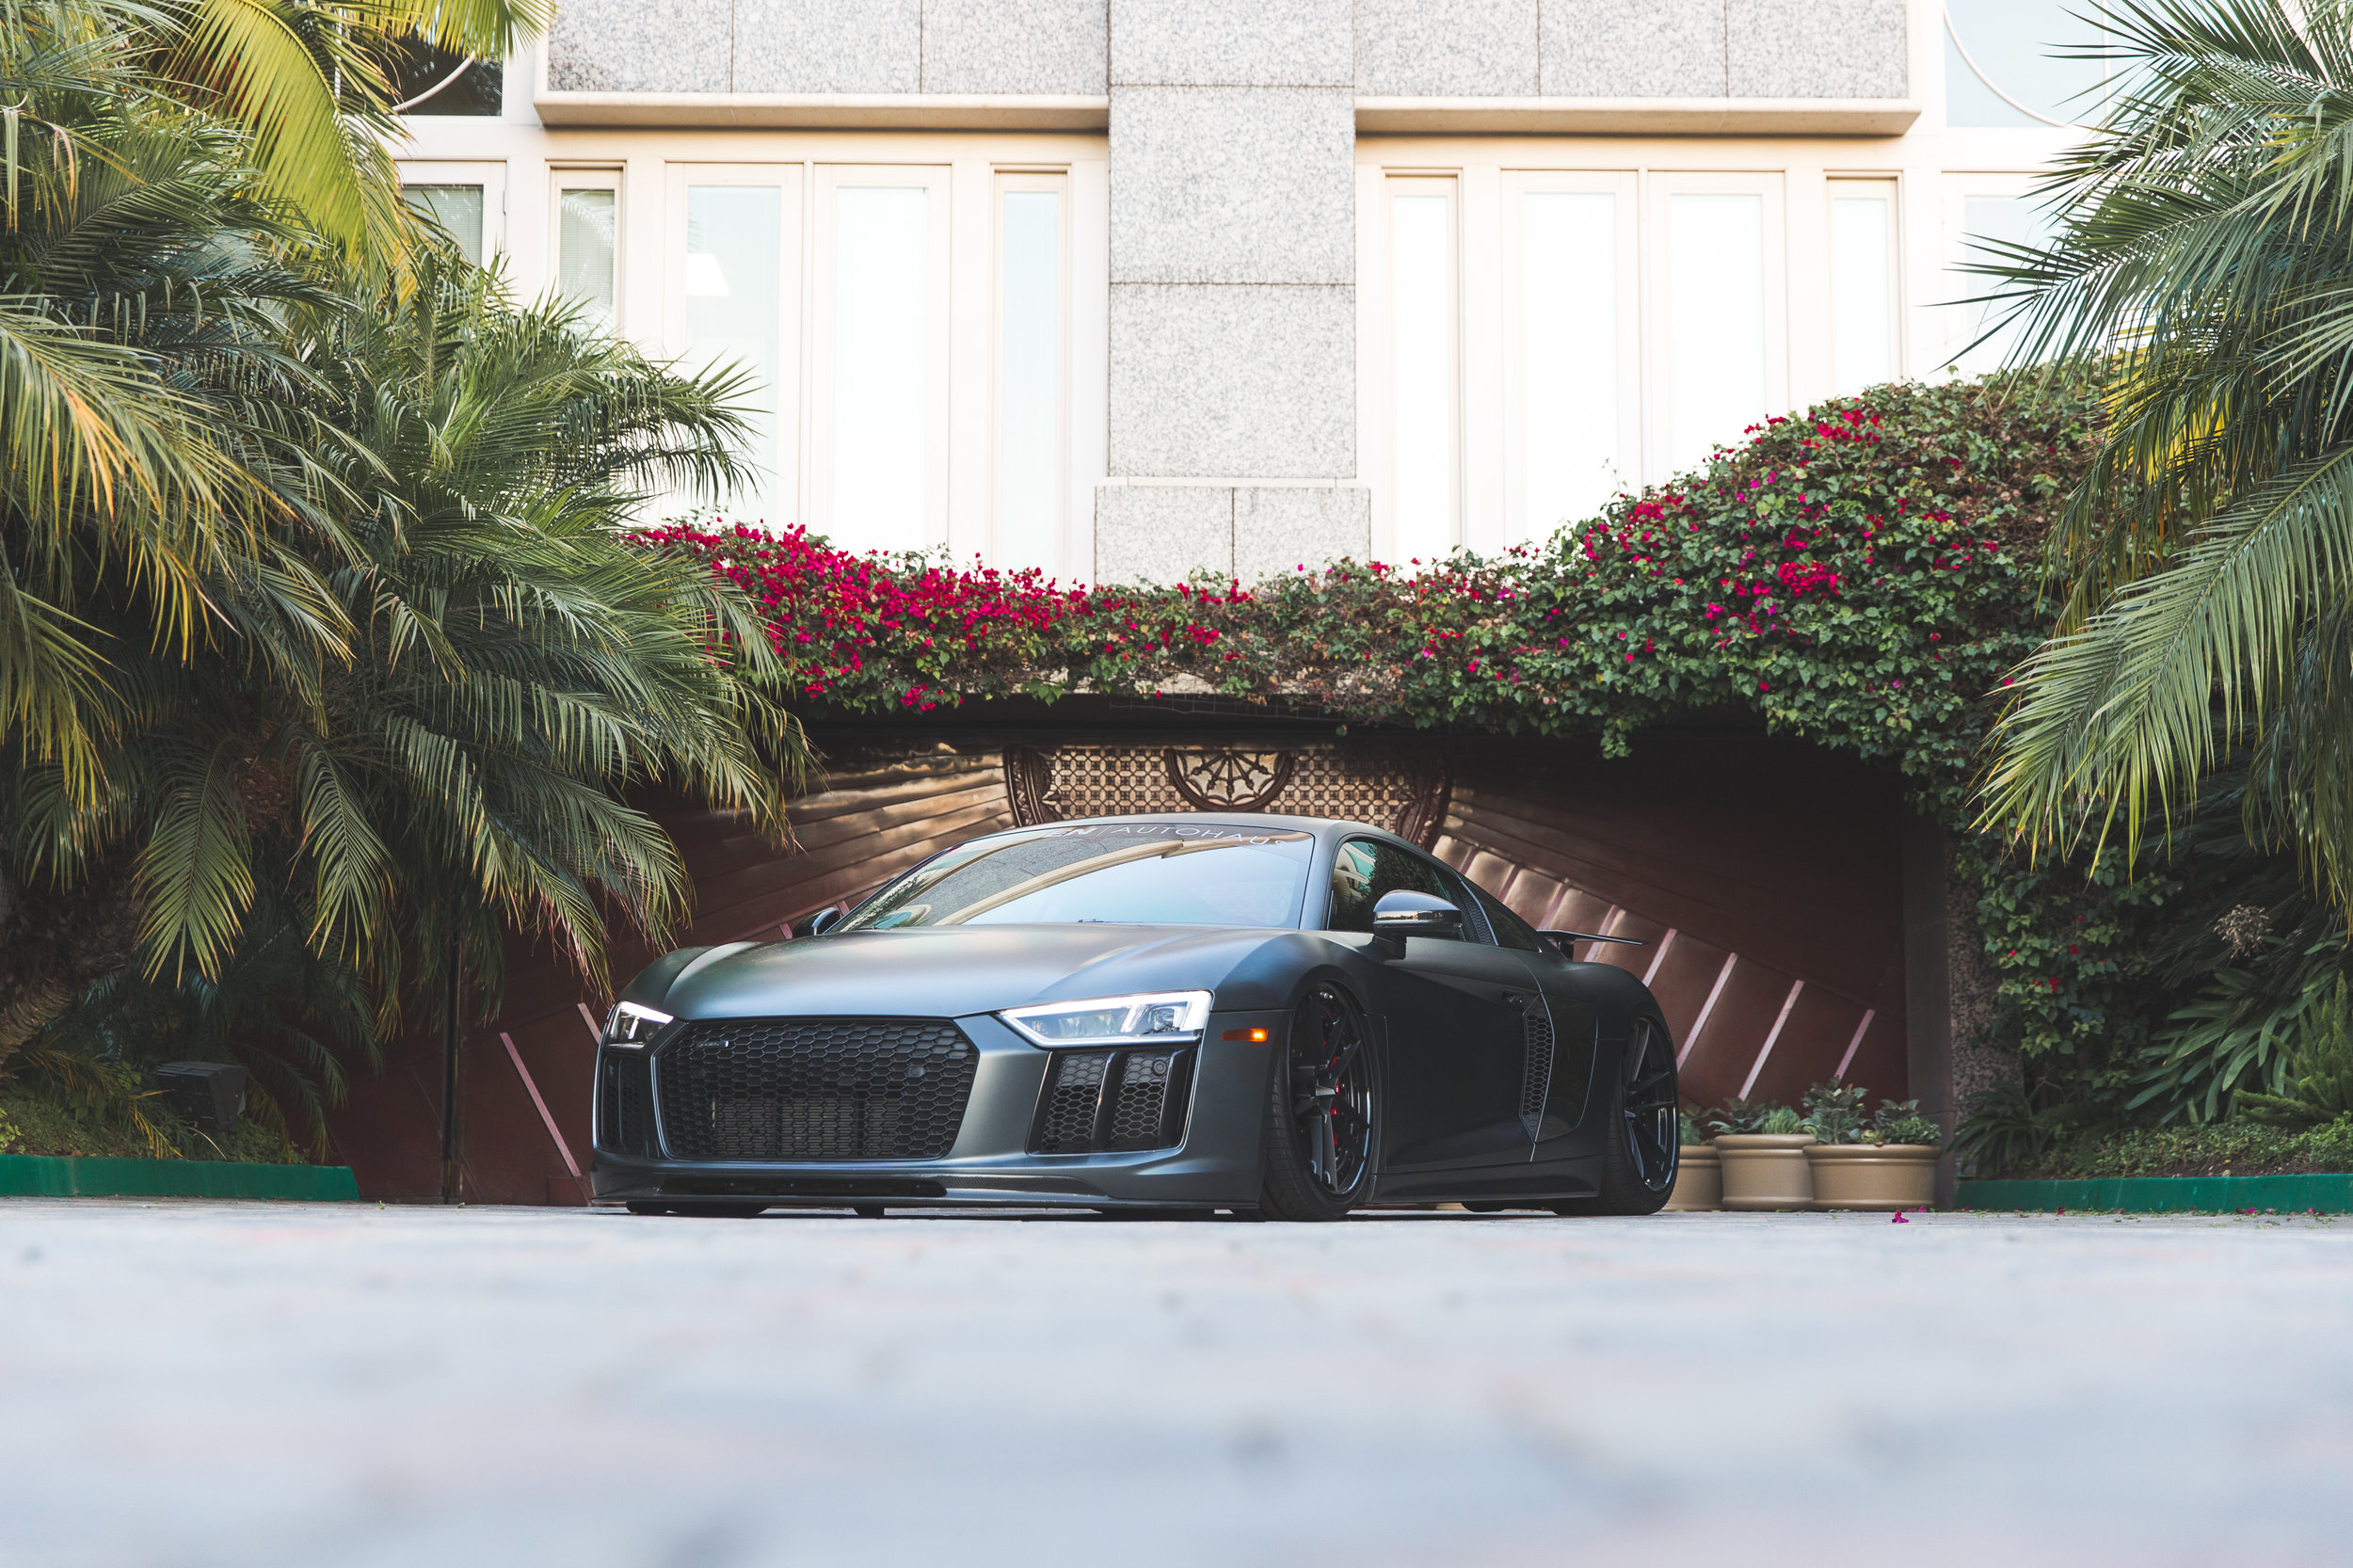 Stay_Driven_Page_R8_Newport-13.jpg